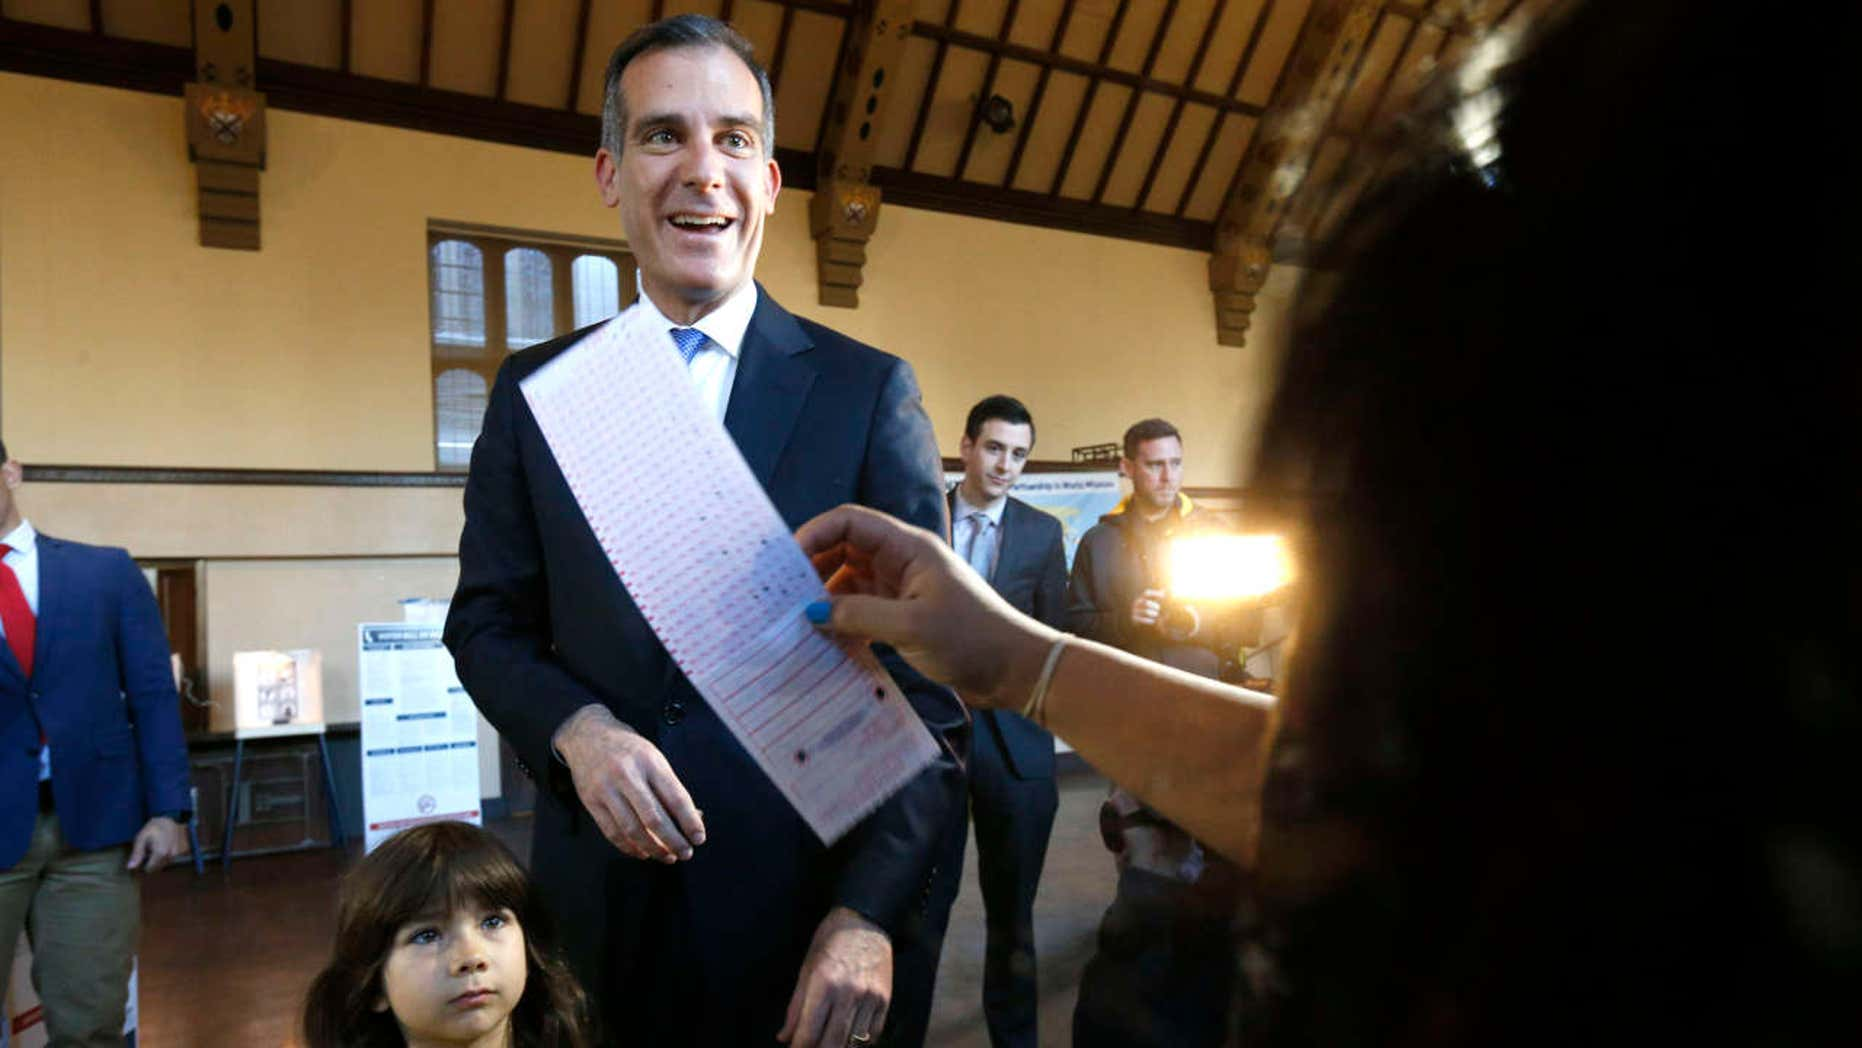 Los Angeles Mayor Eric Garcetti casts his election ballot with his daughter Maya in Los Angeles, on Tuesday, March 7, 2017.